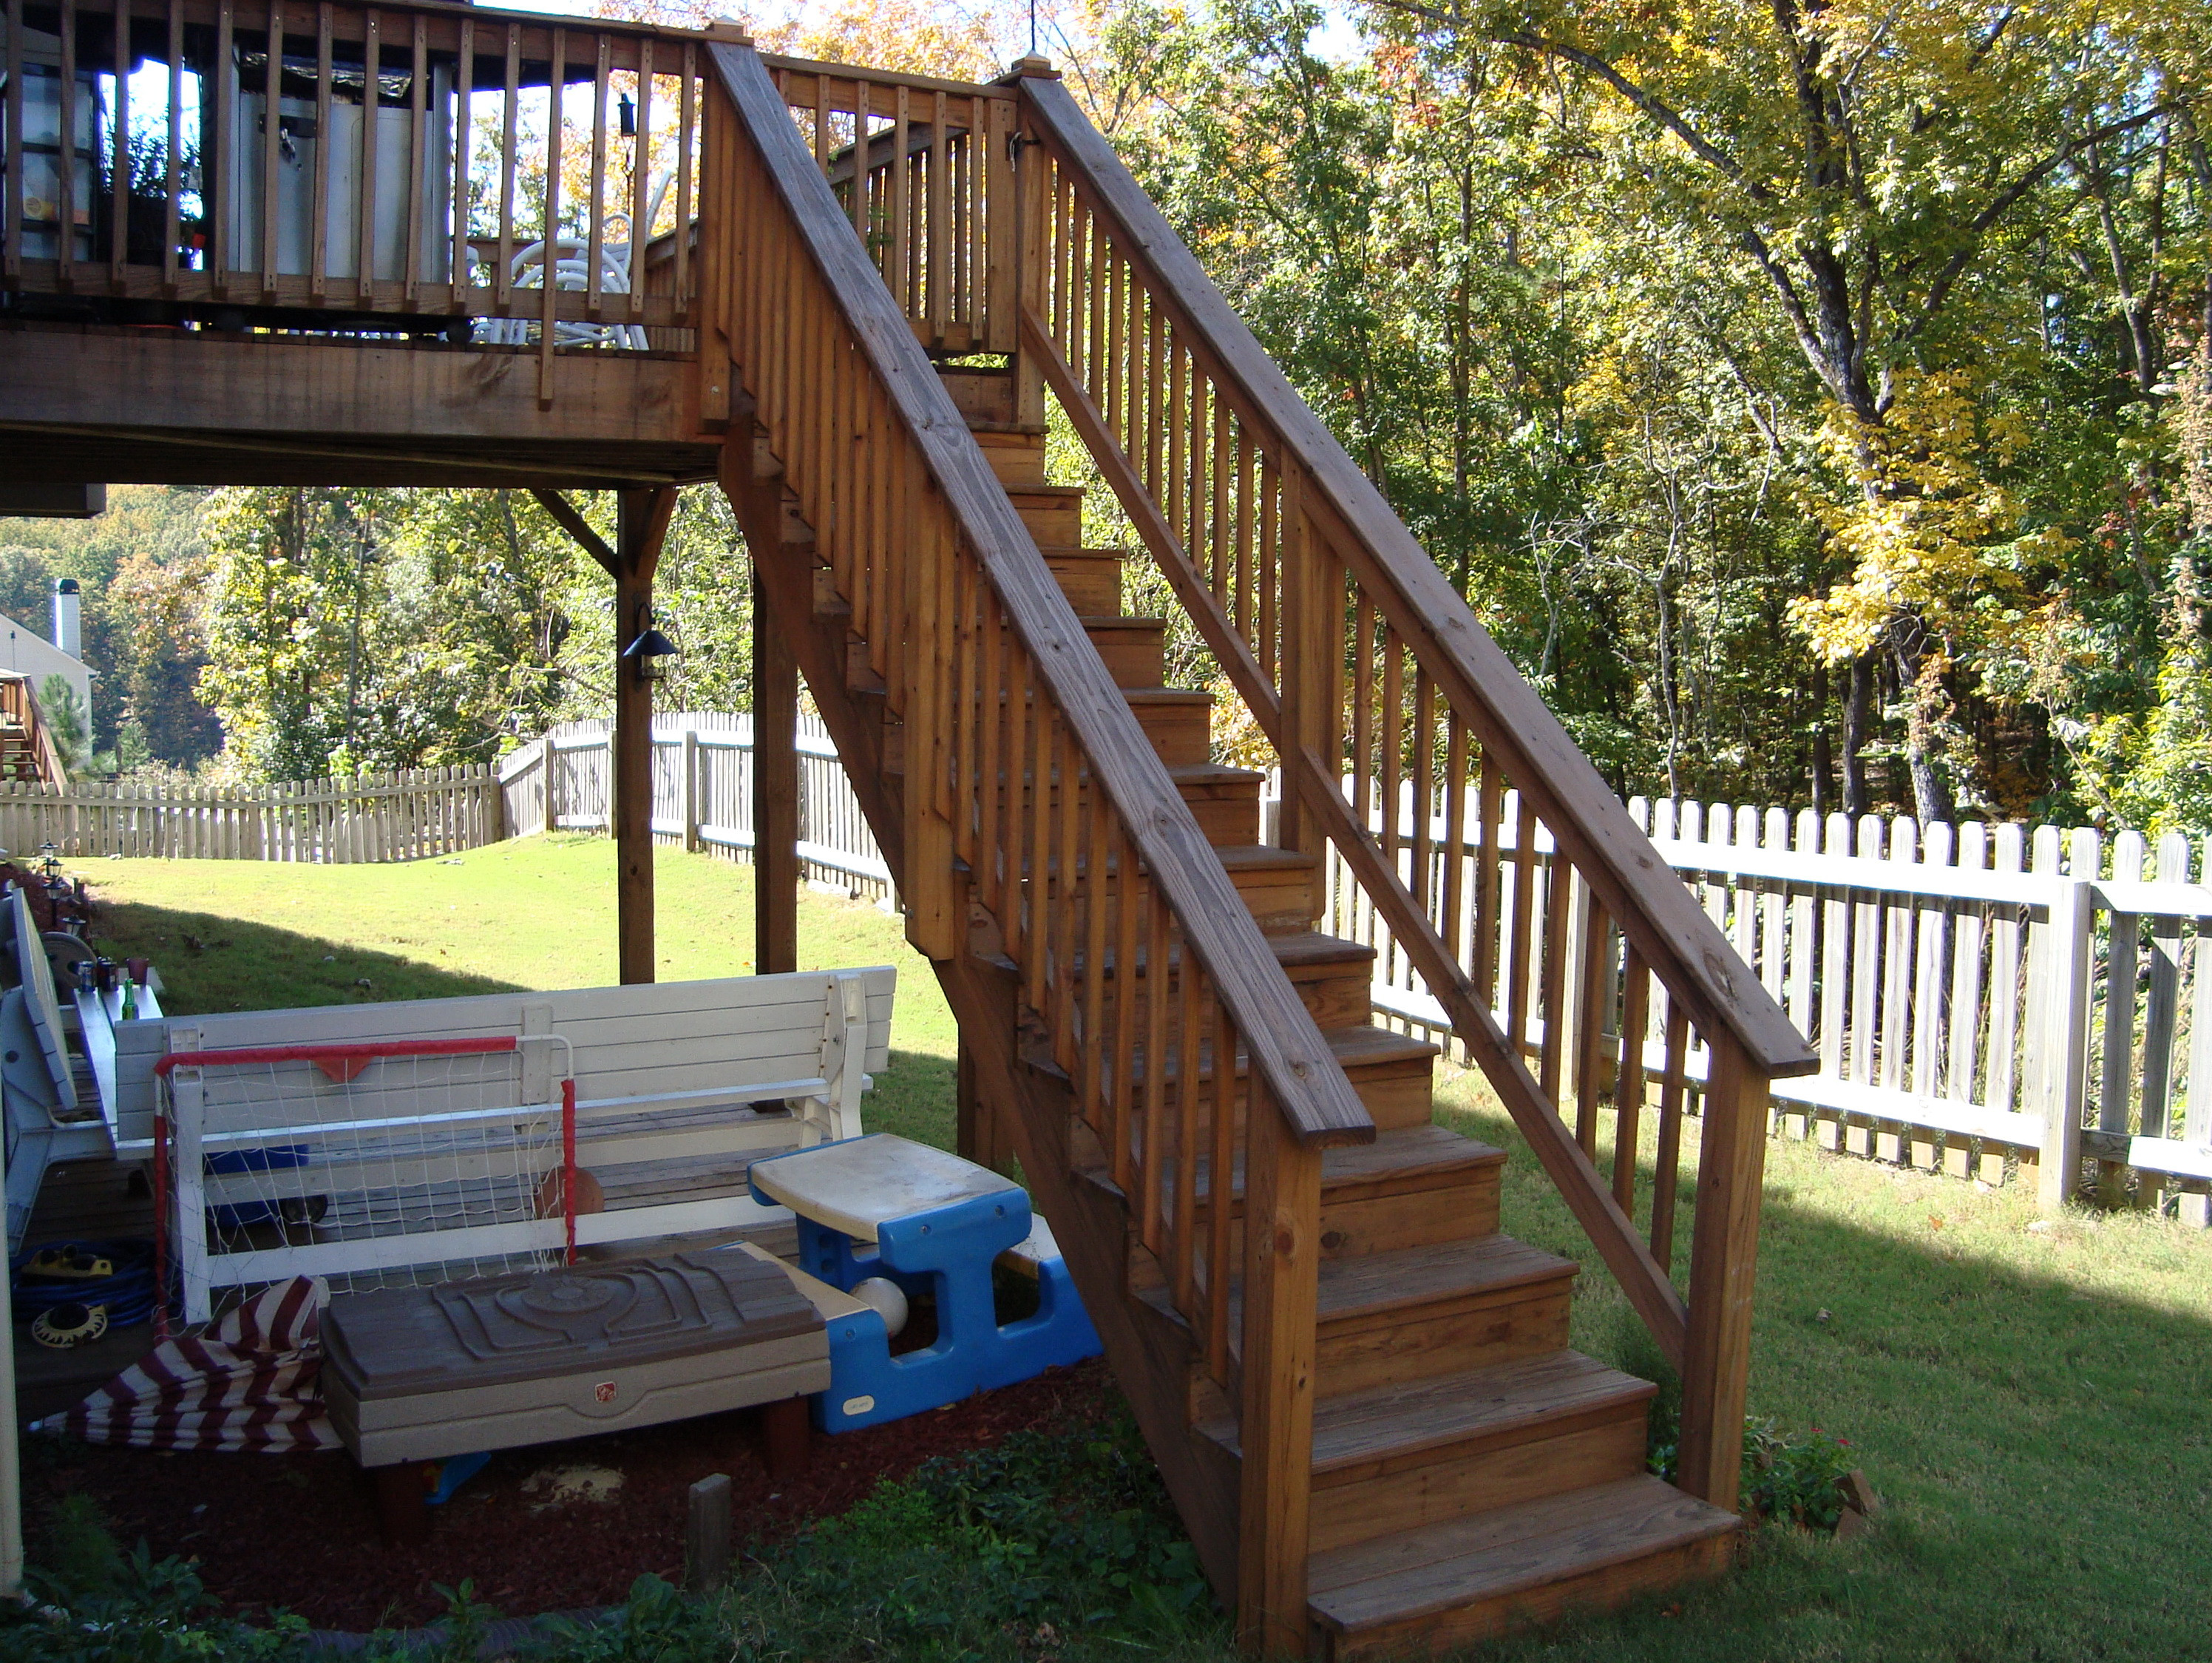 Best ideas about Deck Stairs Code . Save or Pin Deck Stair Handrail Code Now.